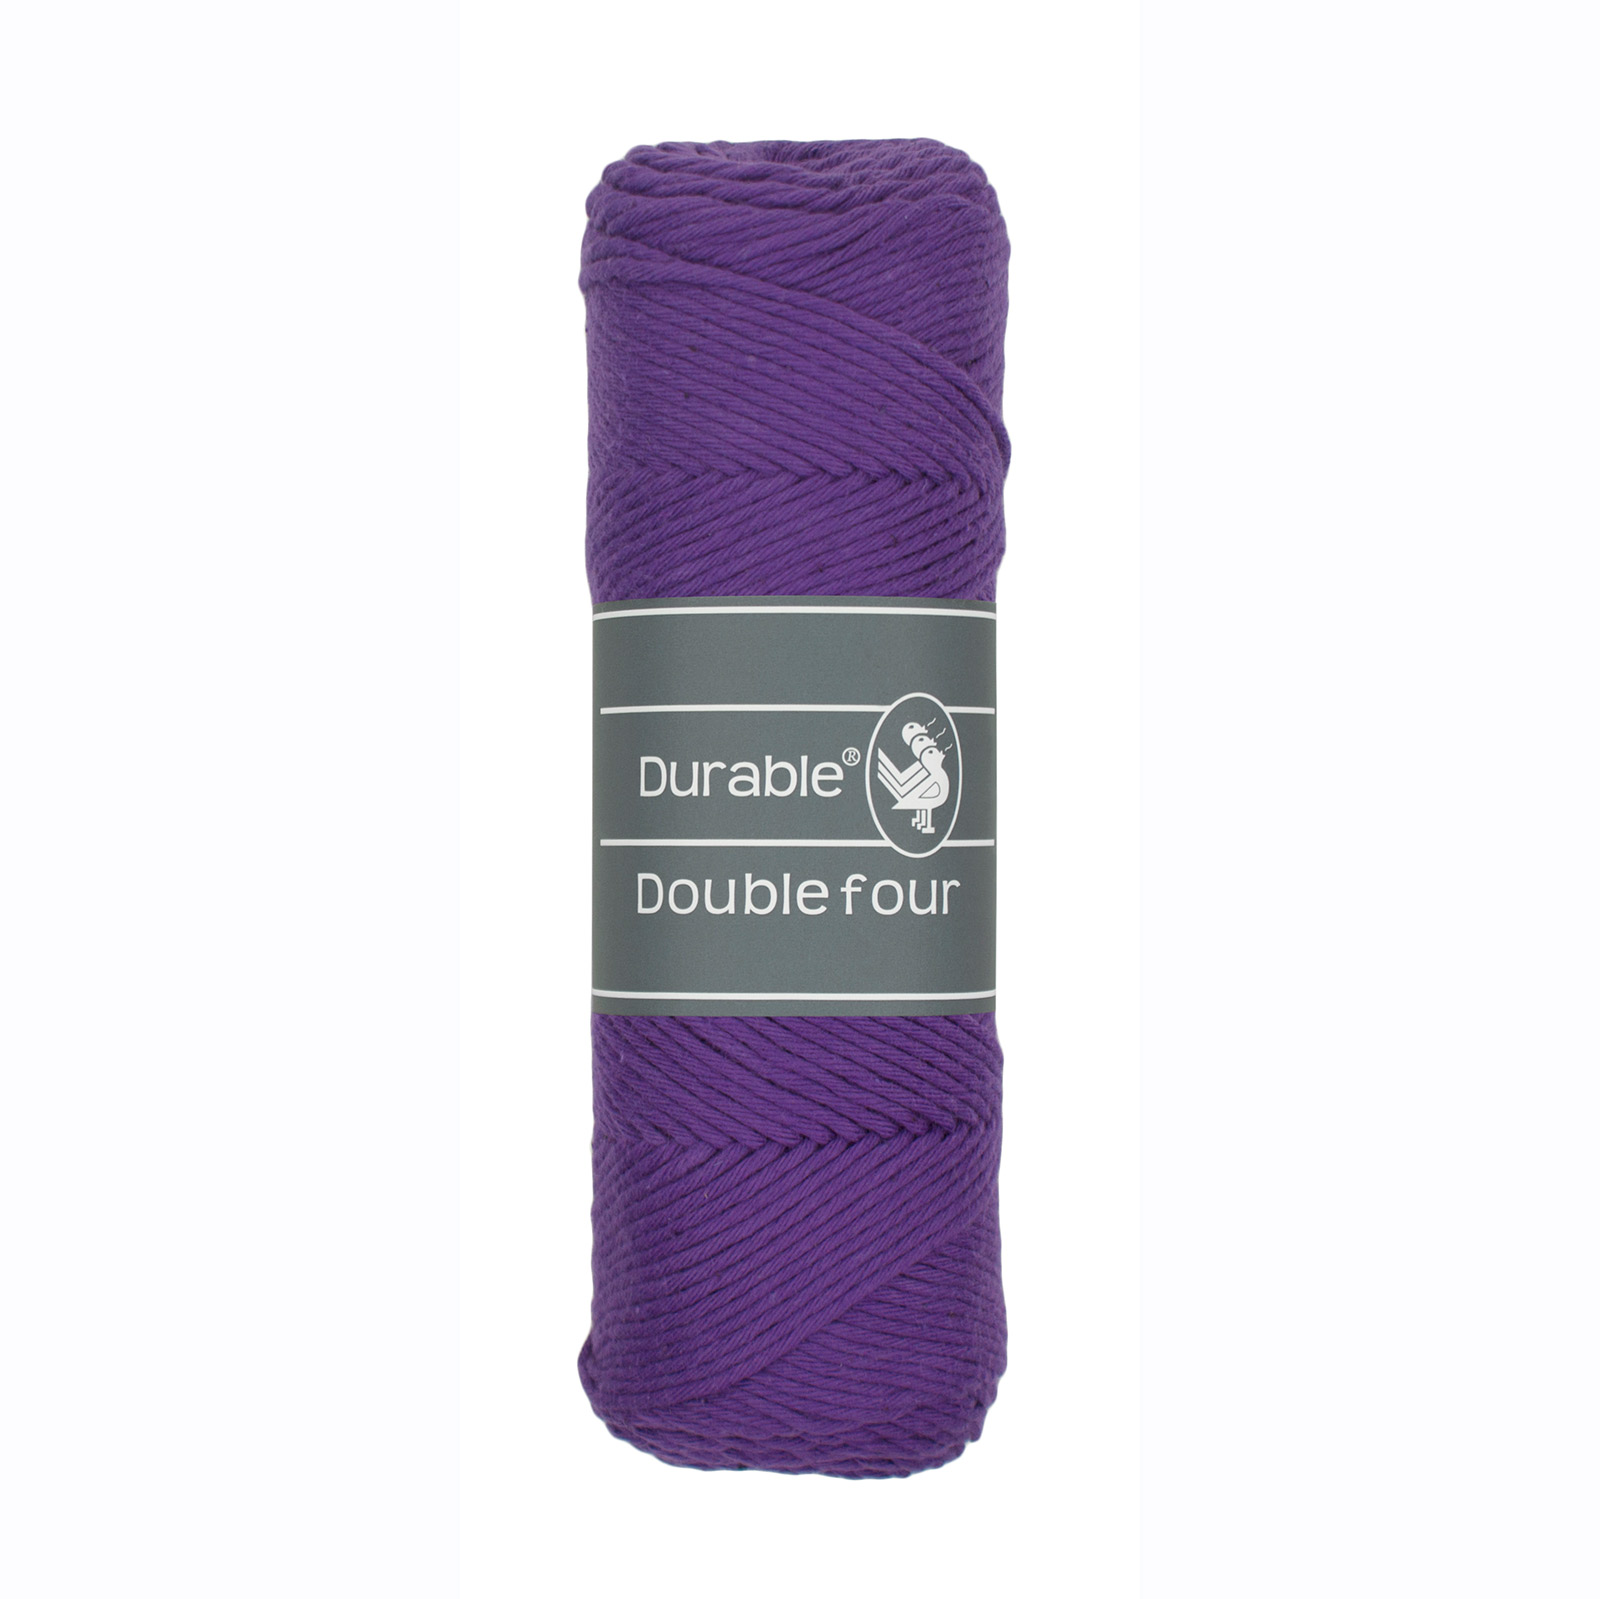 Durable Double Four – 271 Violet